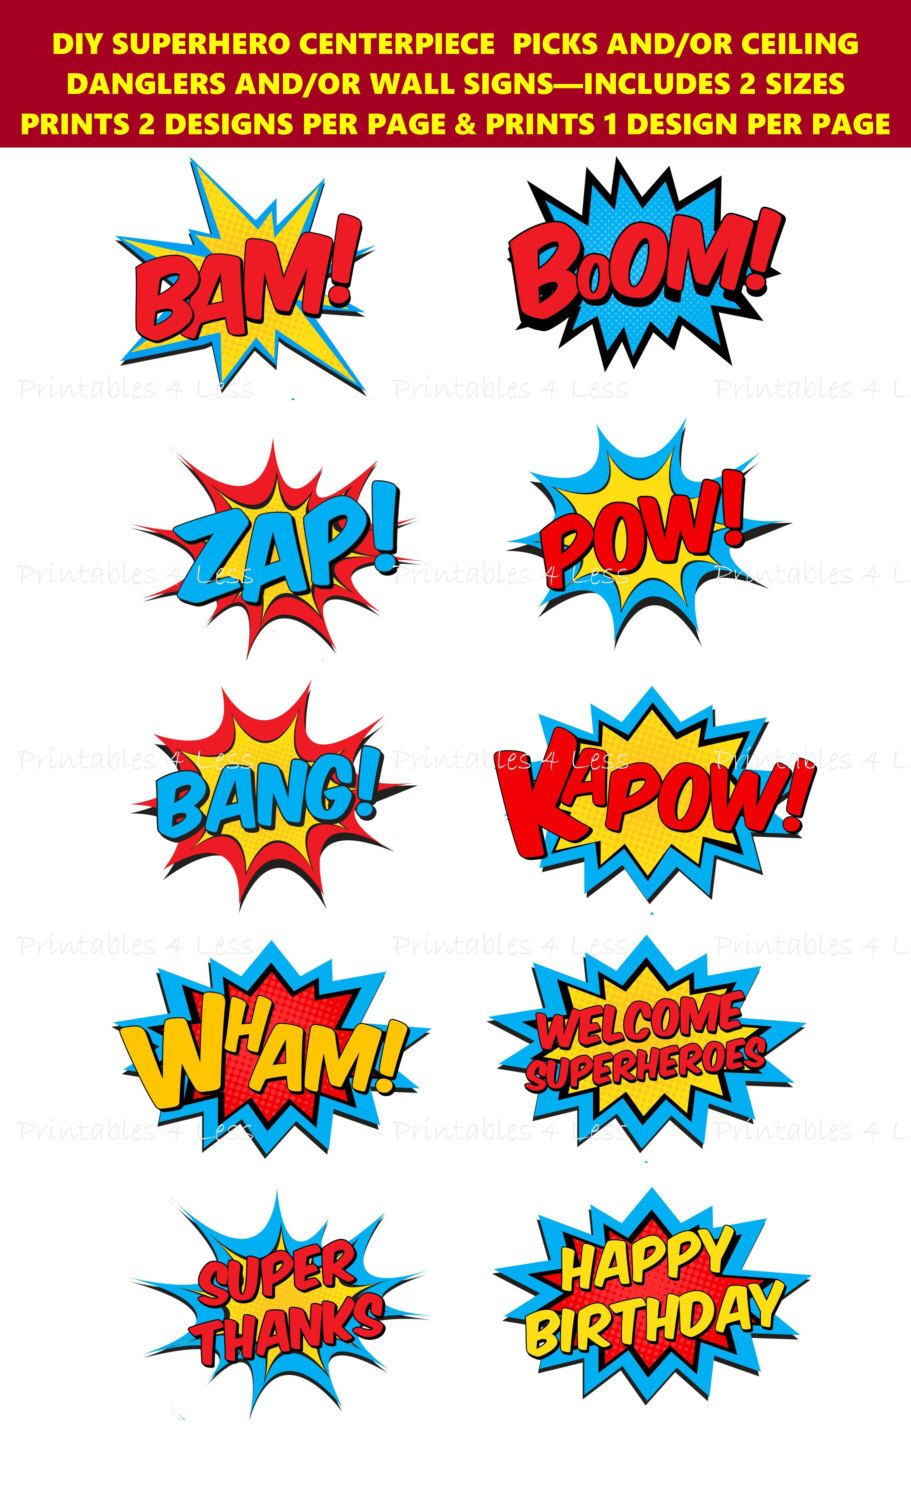 Printable airplane party backdrops party decorations diy template - Superhero Centerpiece Pick Superhero Party Supplies Diy Superhero Party Decoration Printable Superhero Ceiling